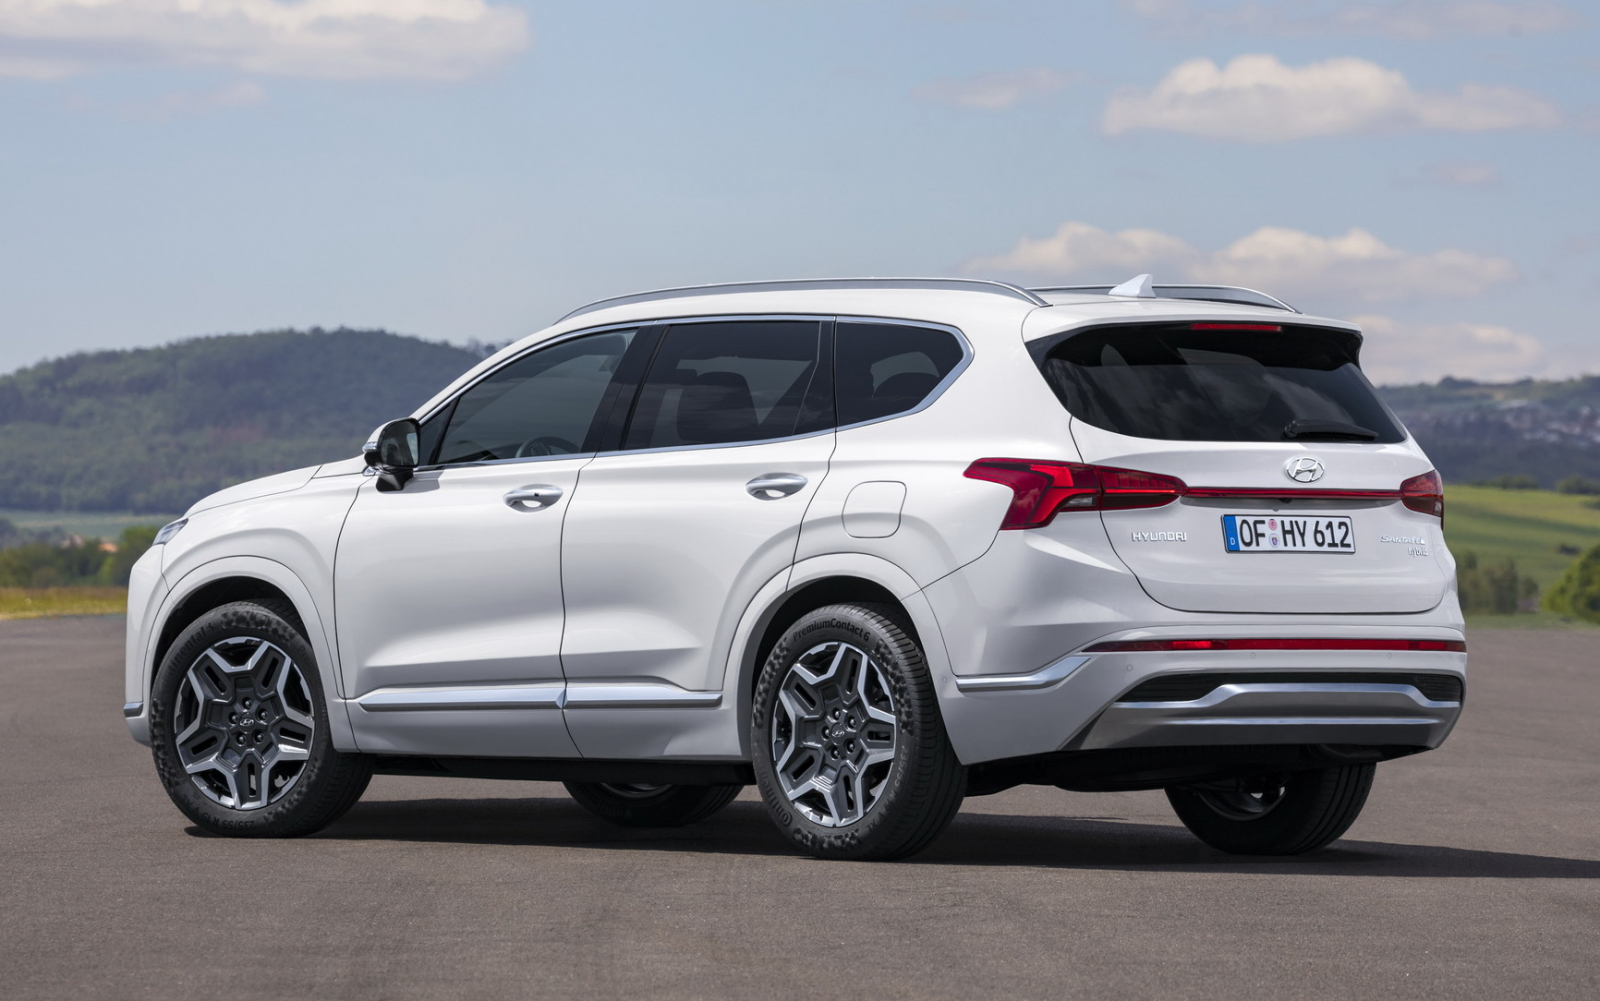 The fourth generation of the Hyundai Santa Fe had barely been around for a few years, but the manufacturer still decided it was time for a mid-life refresh. In its 2021 version, the car gets brand-new tech, looks, accessories and cabin trim.